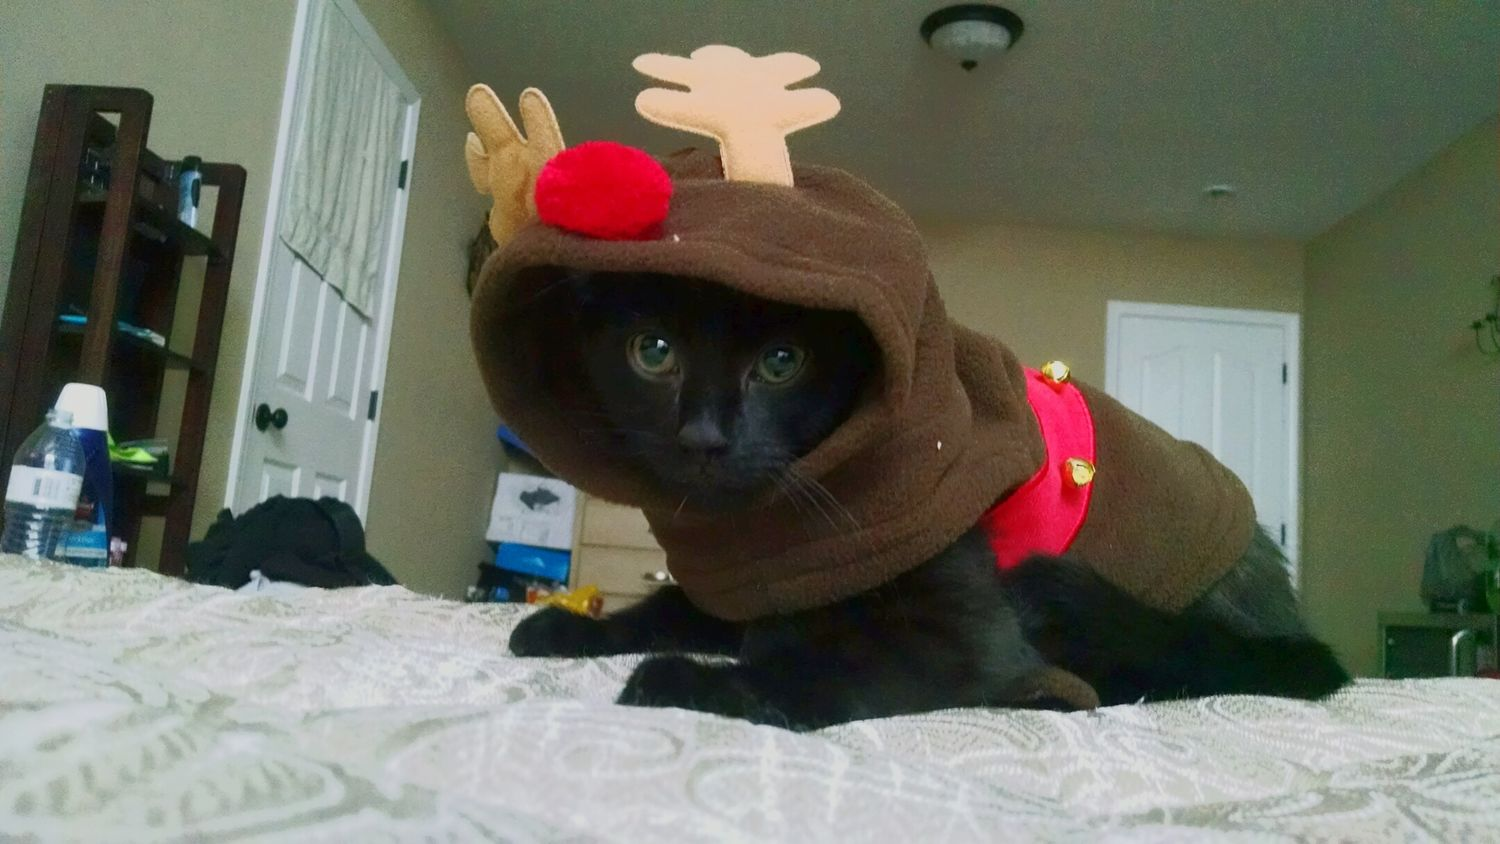 My Winter Favorites Cat Christmas Outfit Embarrassing Love Blackisbeautiful Greeneyes i love you jynx my sweet baby First Eyeem Photo